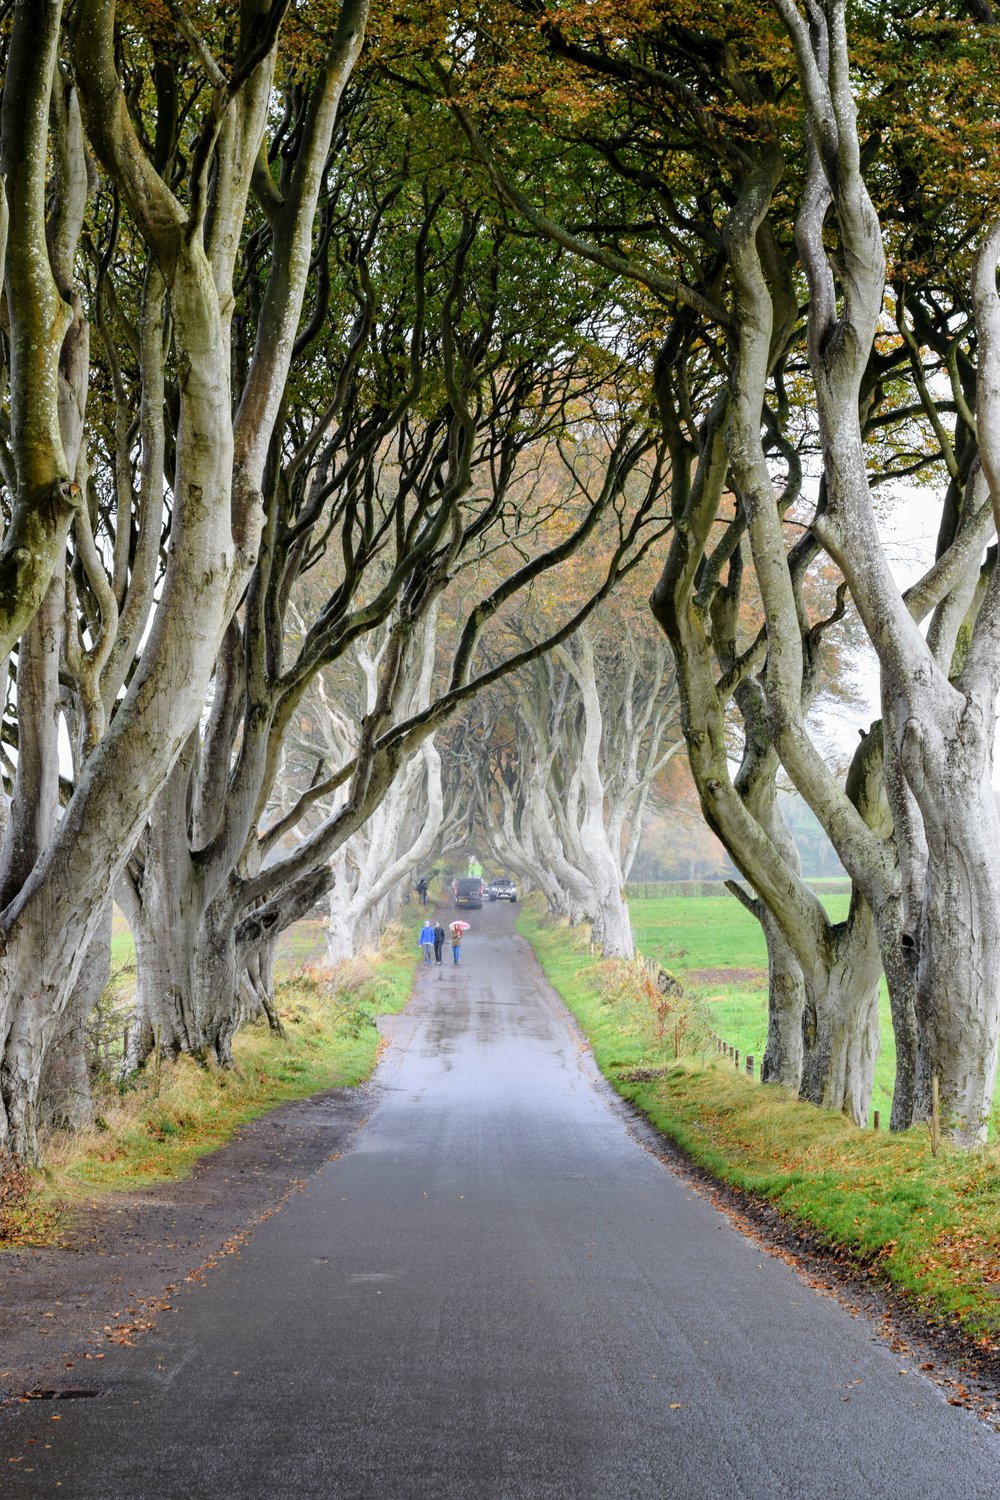 The Dark Hedges; a recent storm knocked down several of the elm trees along the road leading to the gap between the trees on either side of the road. (Nikon D3300, 50mm, f/5, 1/100 sec, ISO 400)